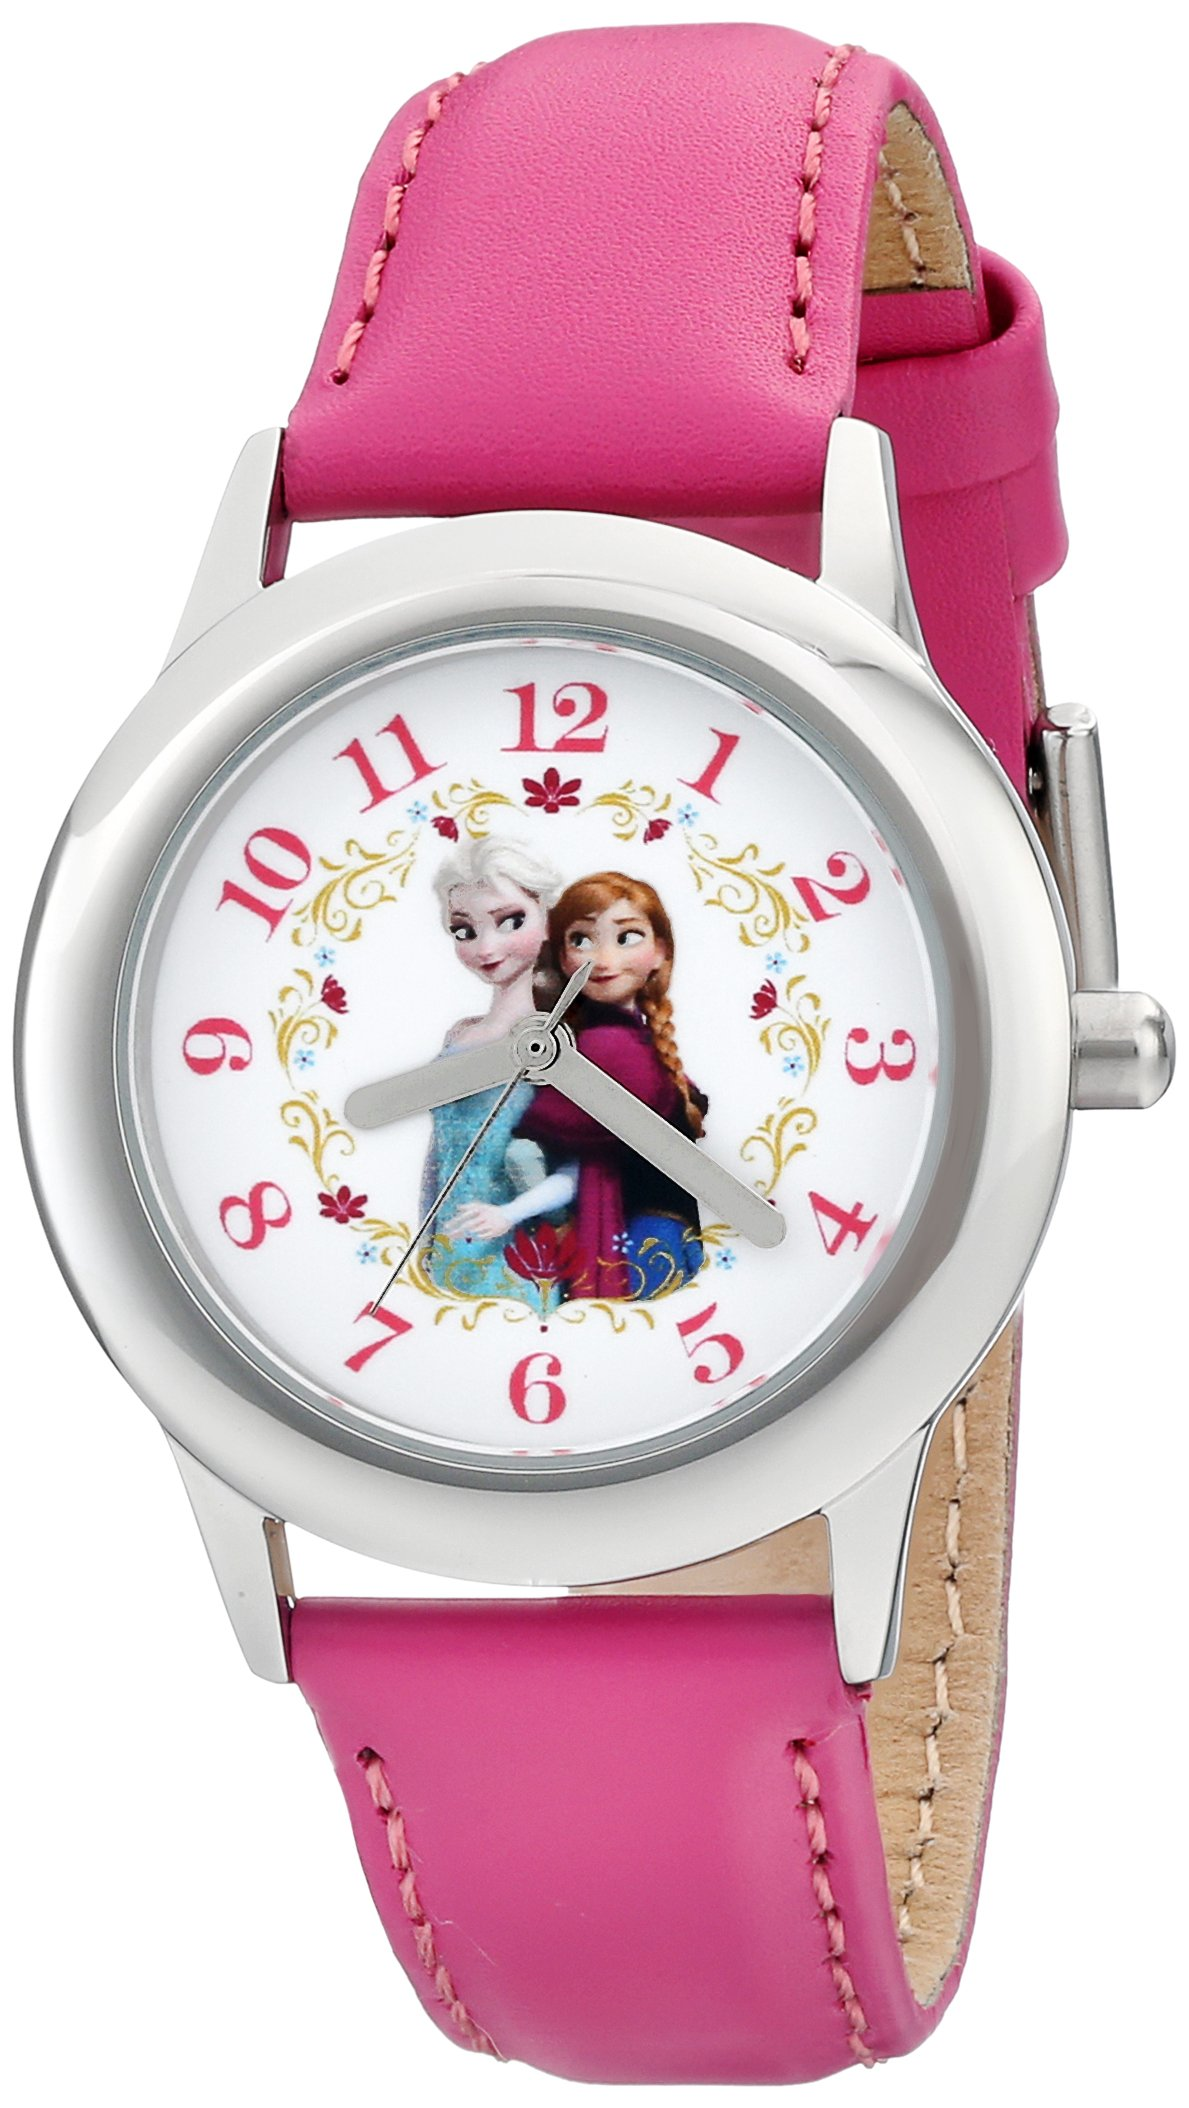 Disney Kids' W001793 ''Frozen Elsa and Anna'' Stainless Steel Watch with Pink Leather Band by Disney (Image #1)